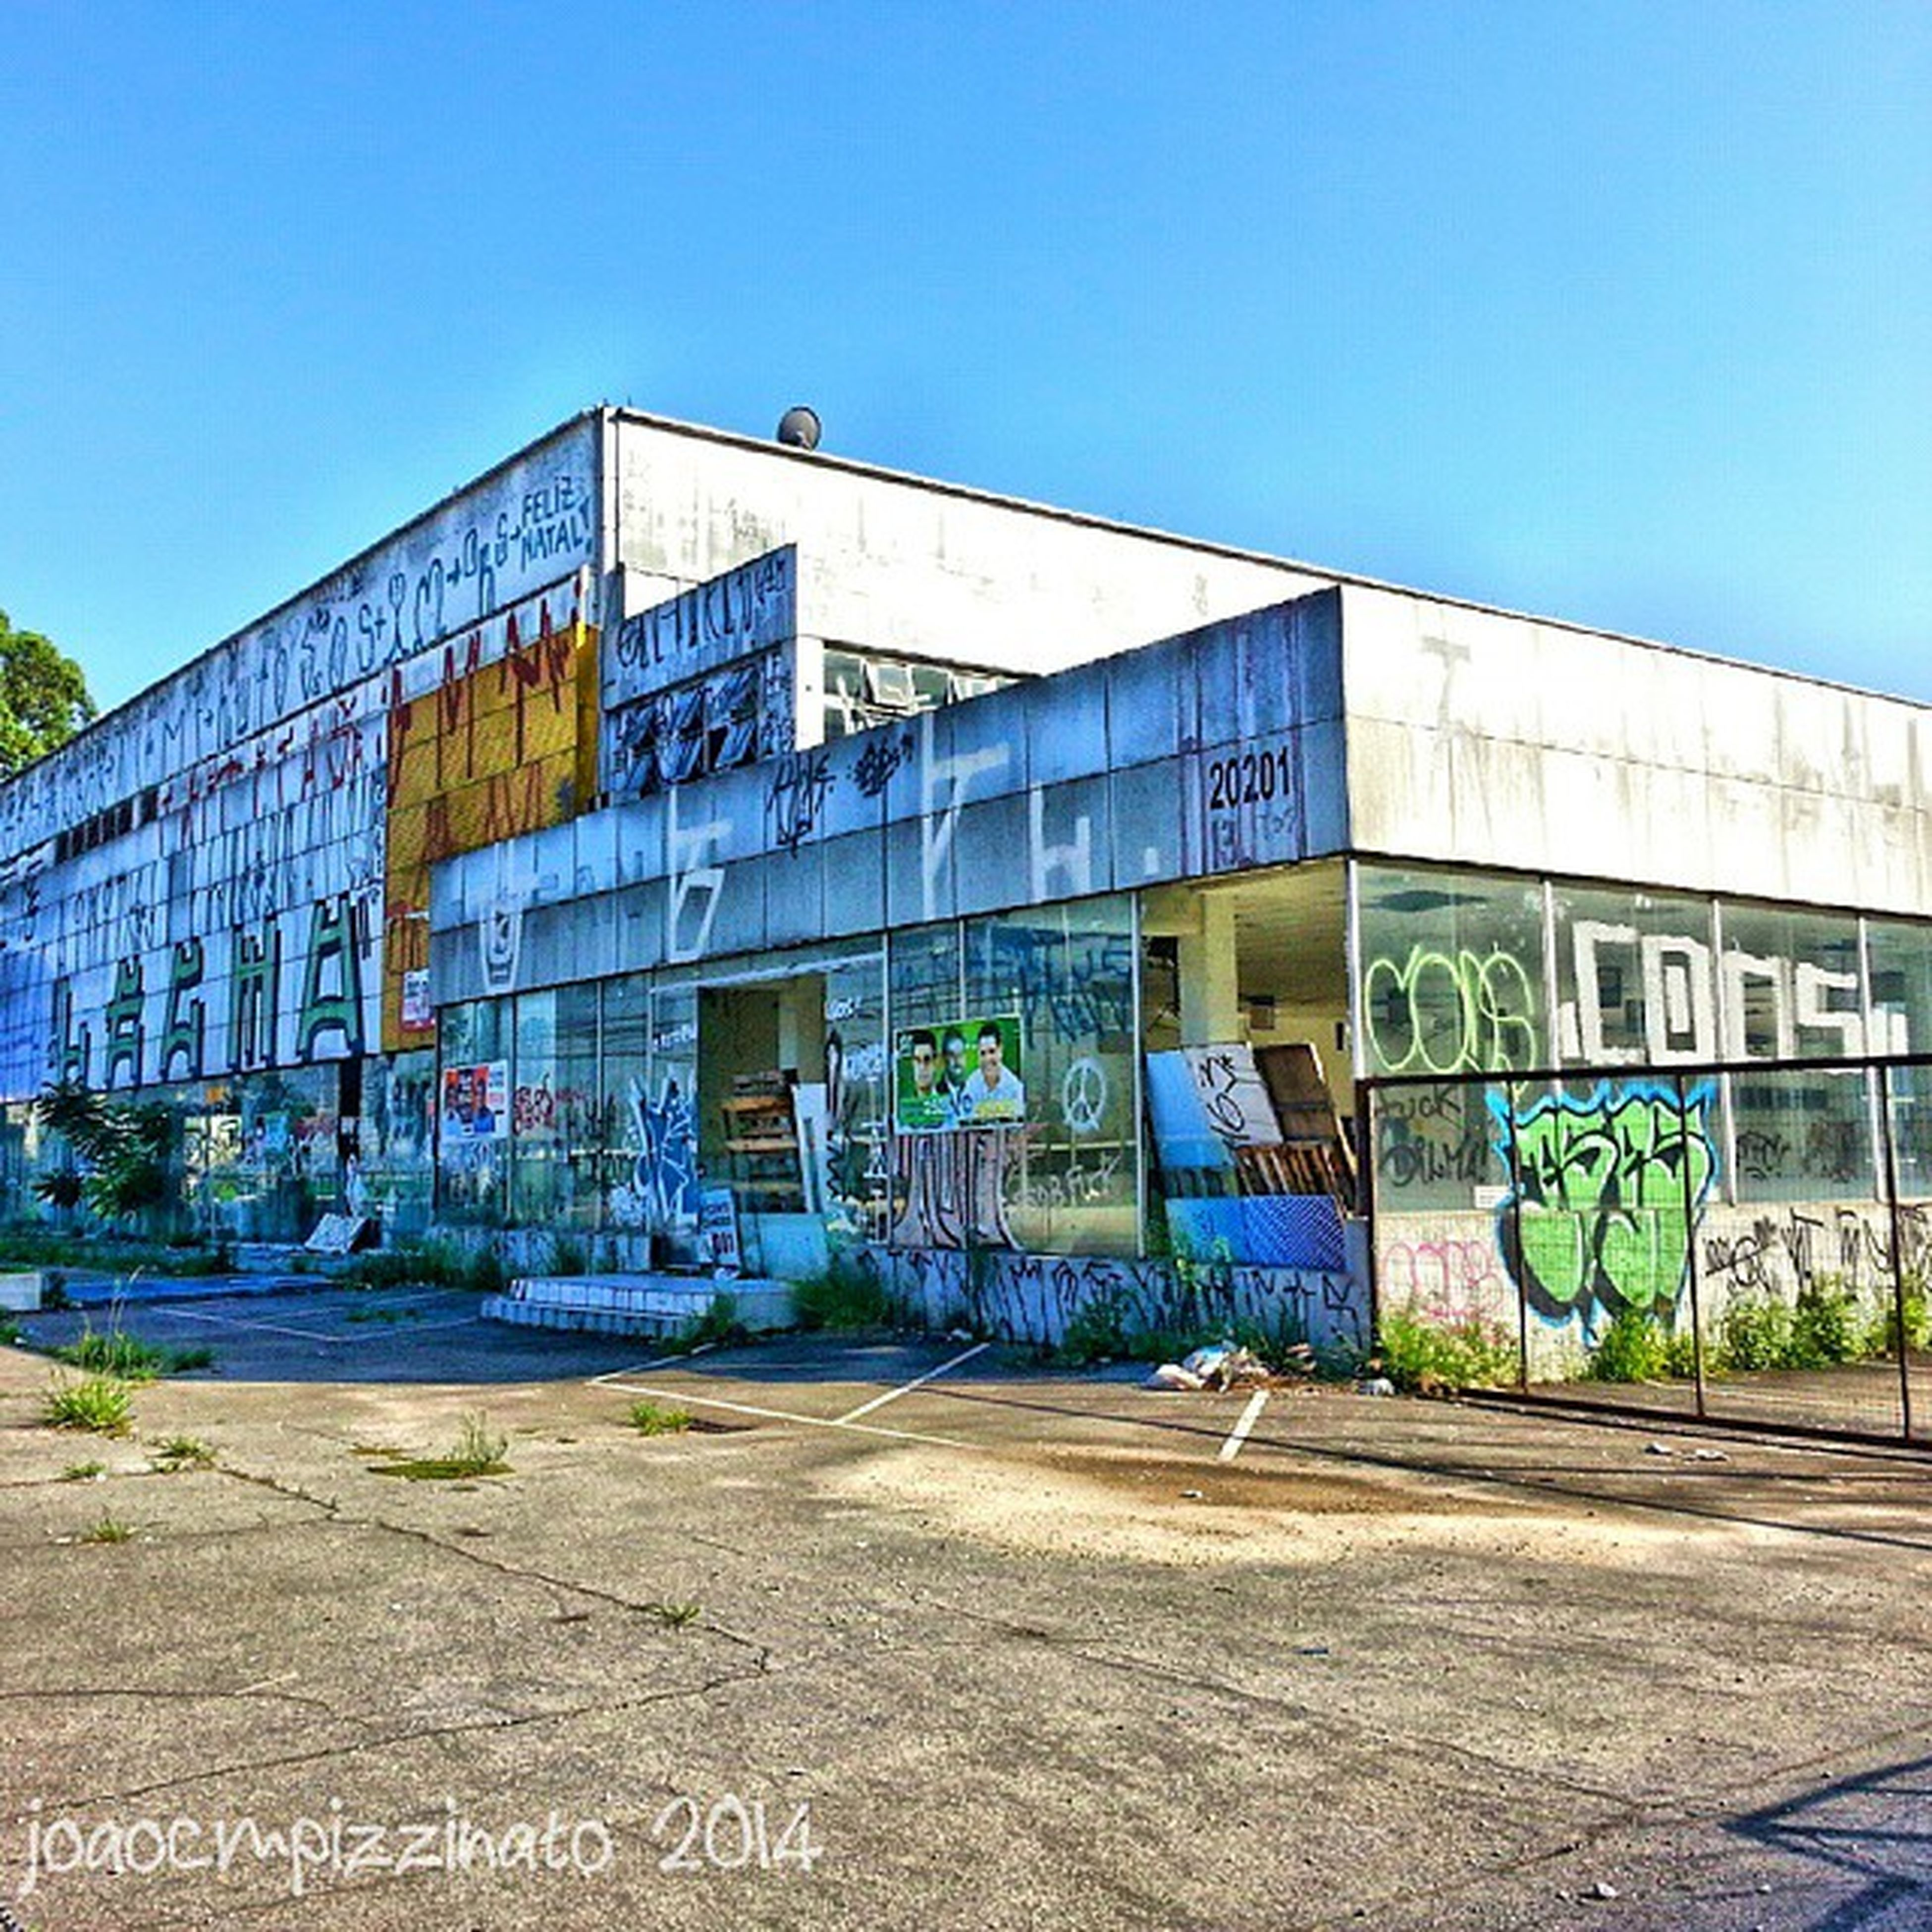 architecture, built structure, graffiti, building exterior, clear sky, blue, text, art, western script, creativity, transportation, art and craft, day, sunlight, street, outdoors, building, city, sky, road